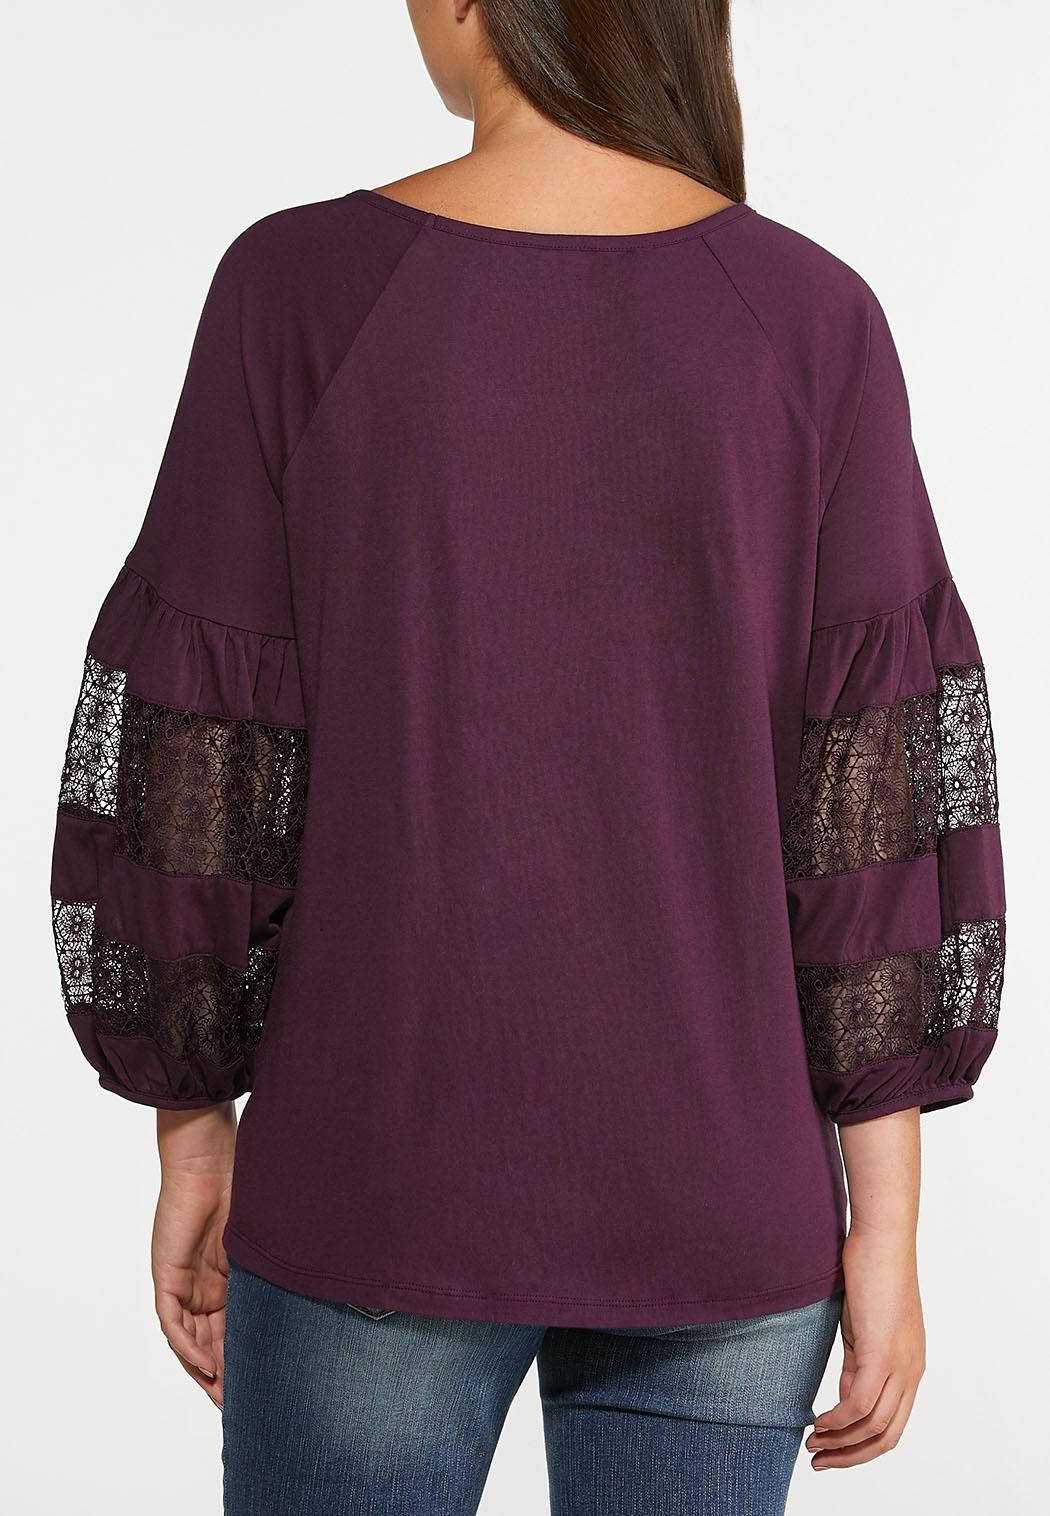 Lacy Balloon Sleeve Top (Item #44357947)